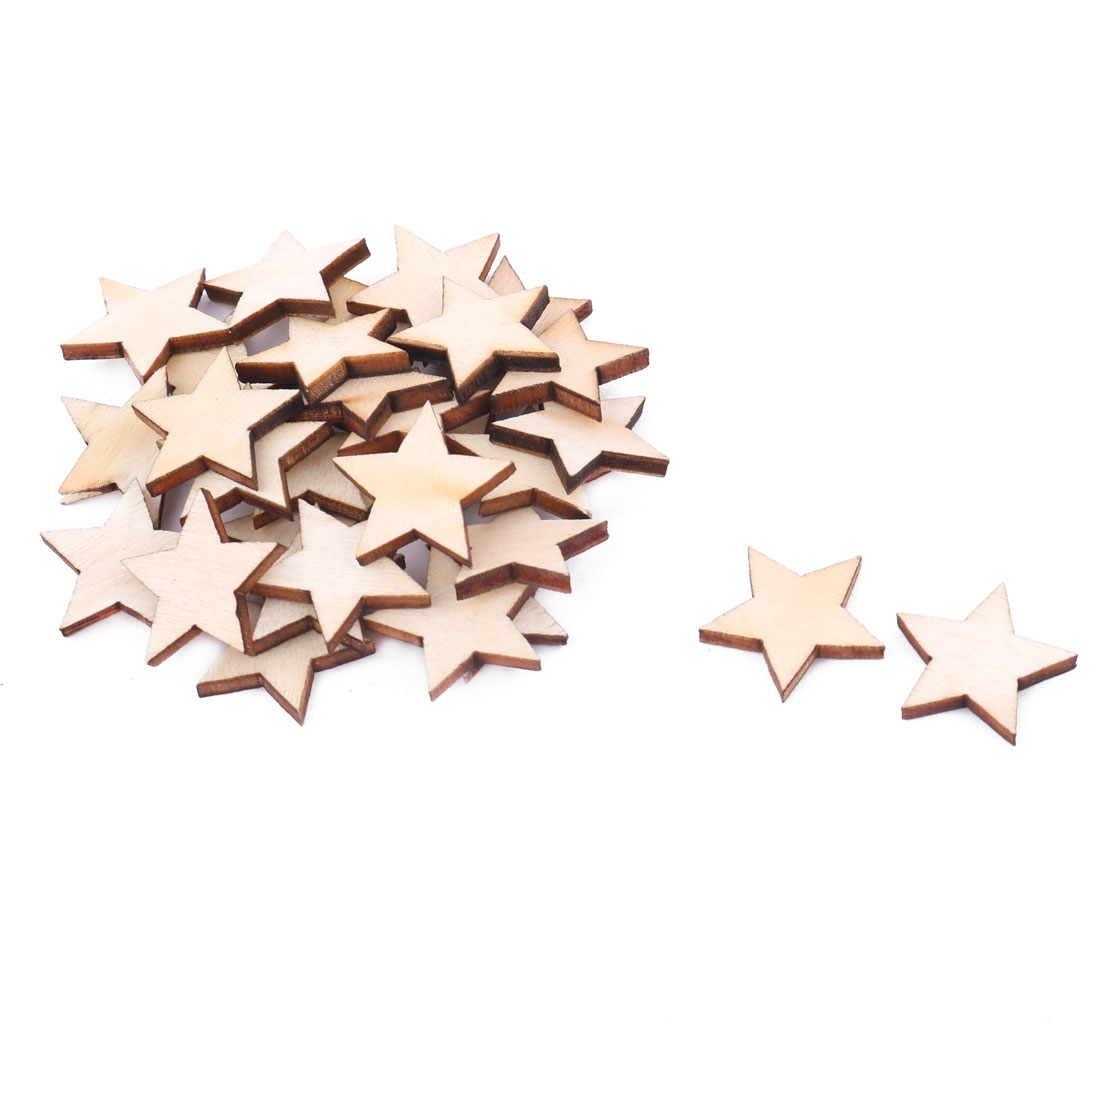 Wooden Star Shaped DIY Craft Christmas Tree Decor Accessories Ornaments Beige 20 x 20mm 30pcs